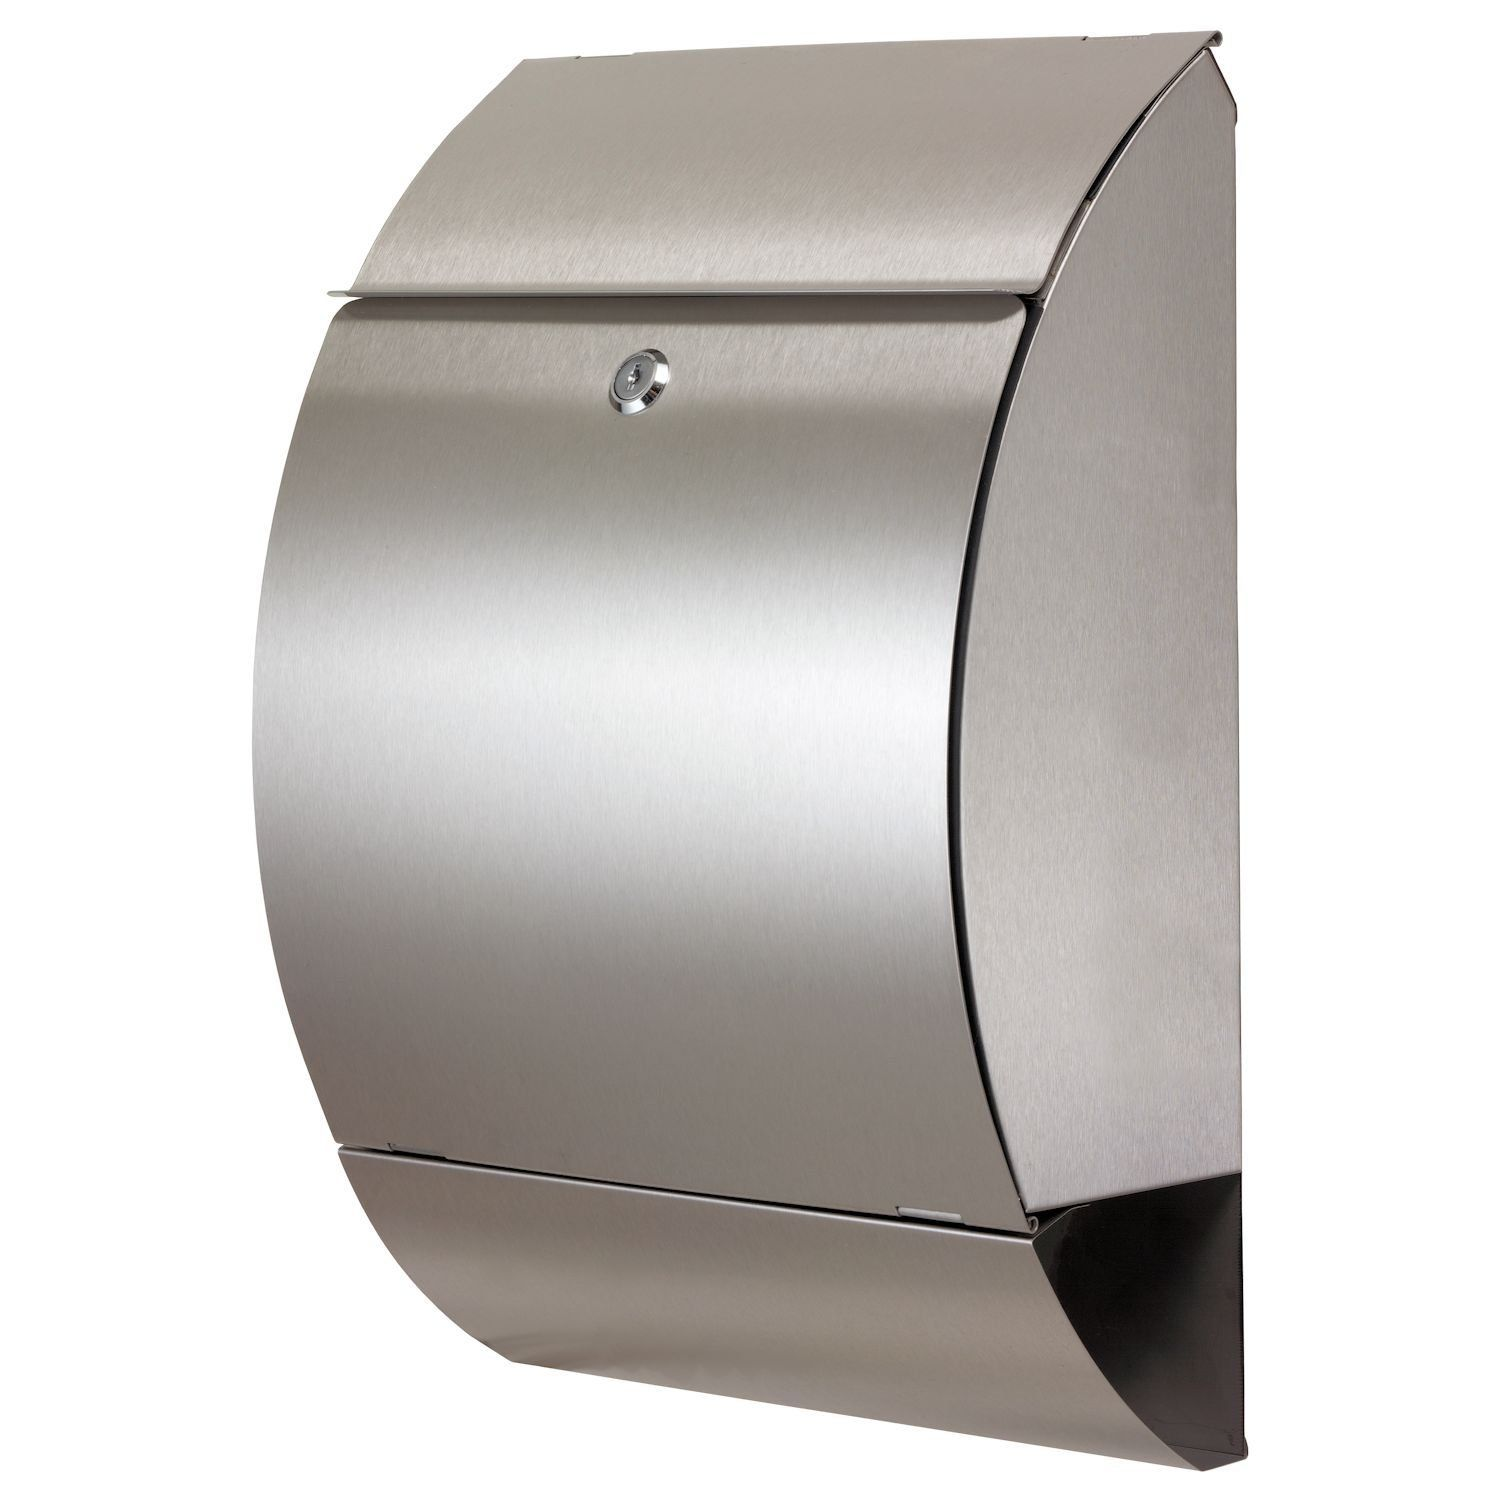 Zelsius 174 Letter Box With Newspaper Holder Stainless